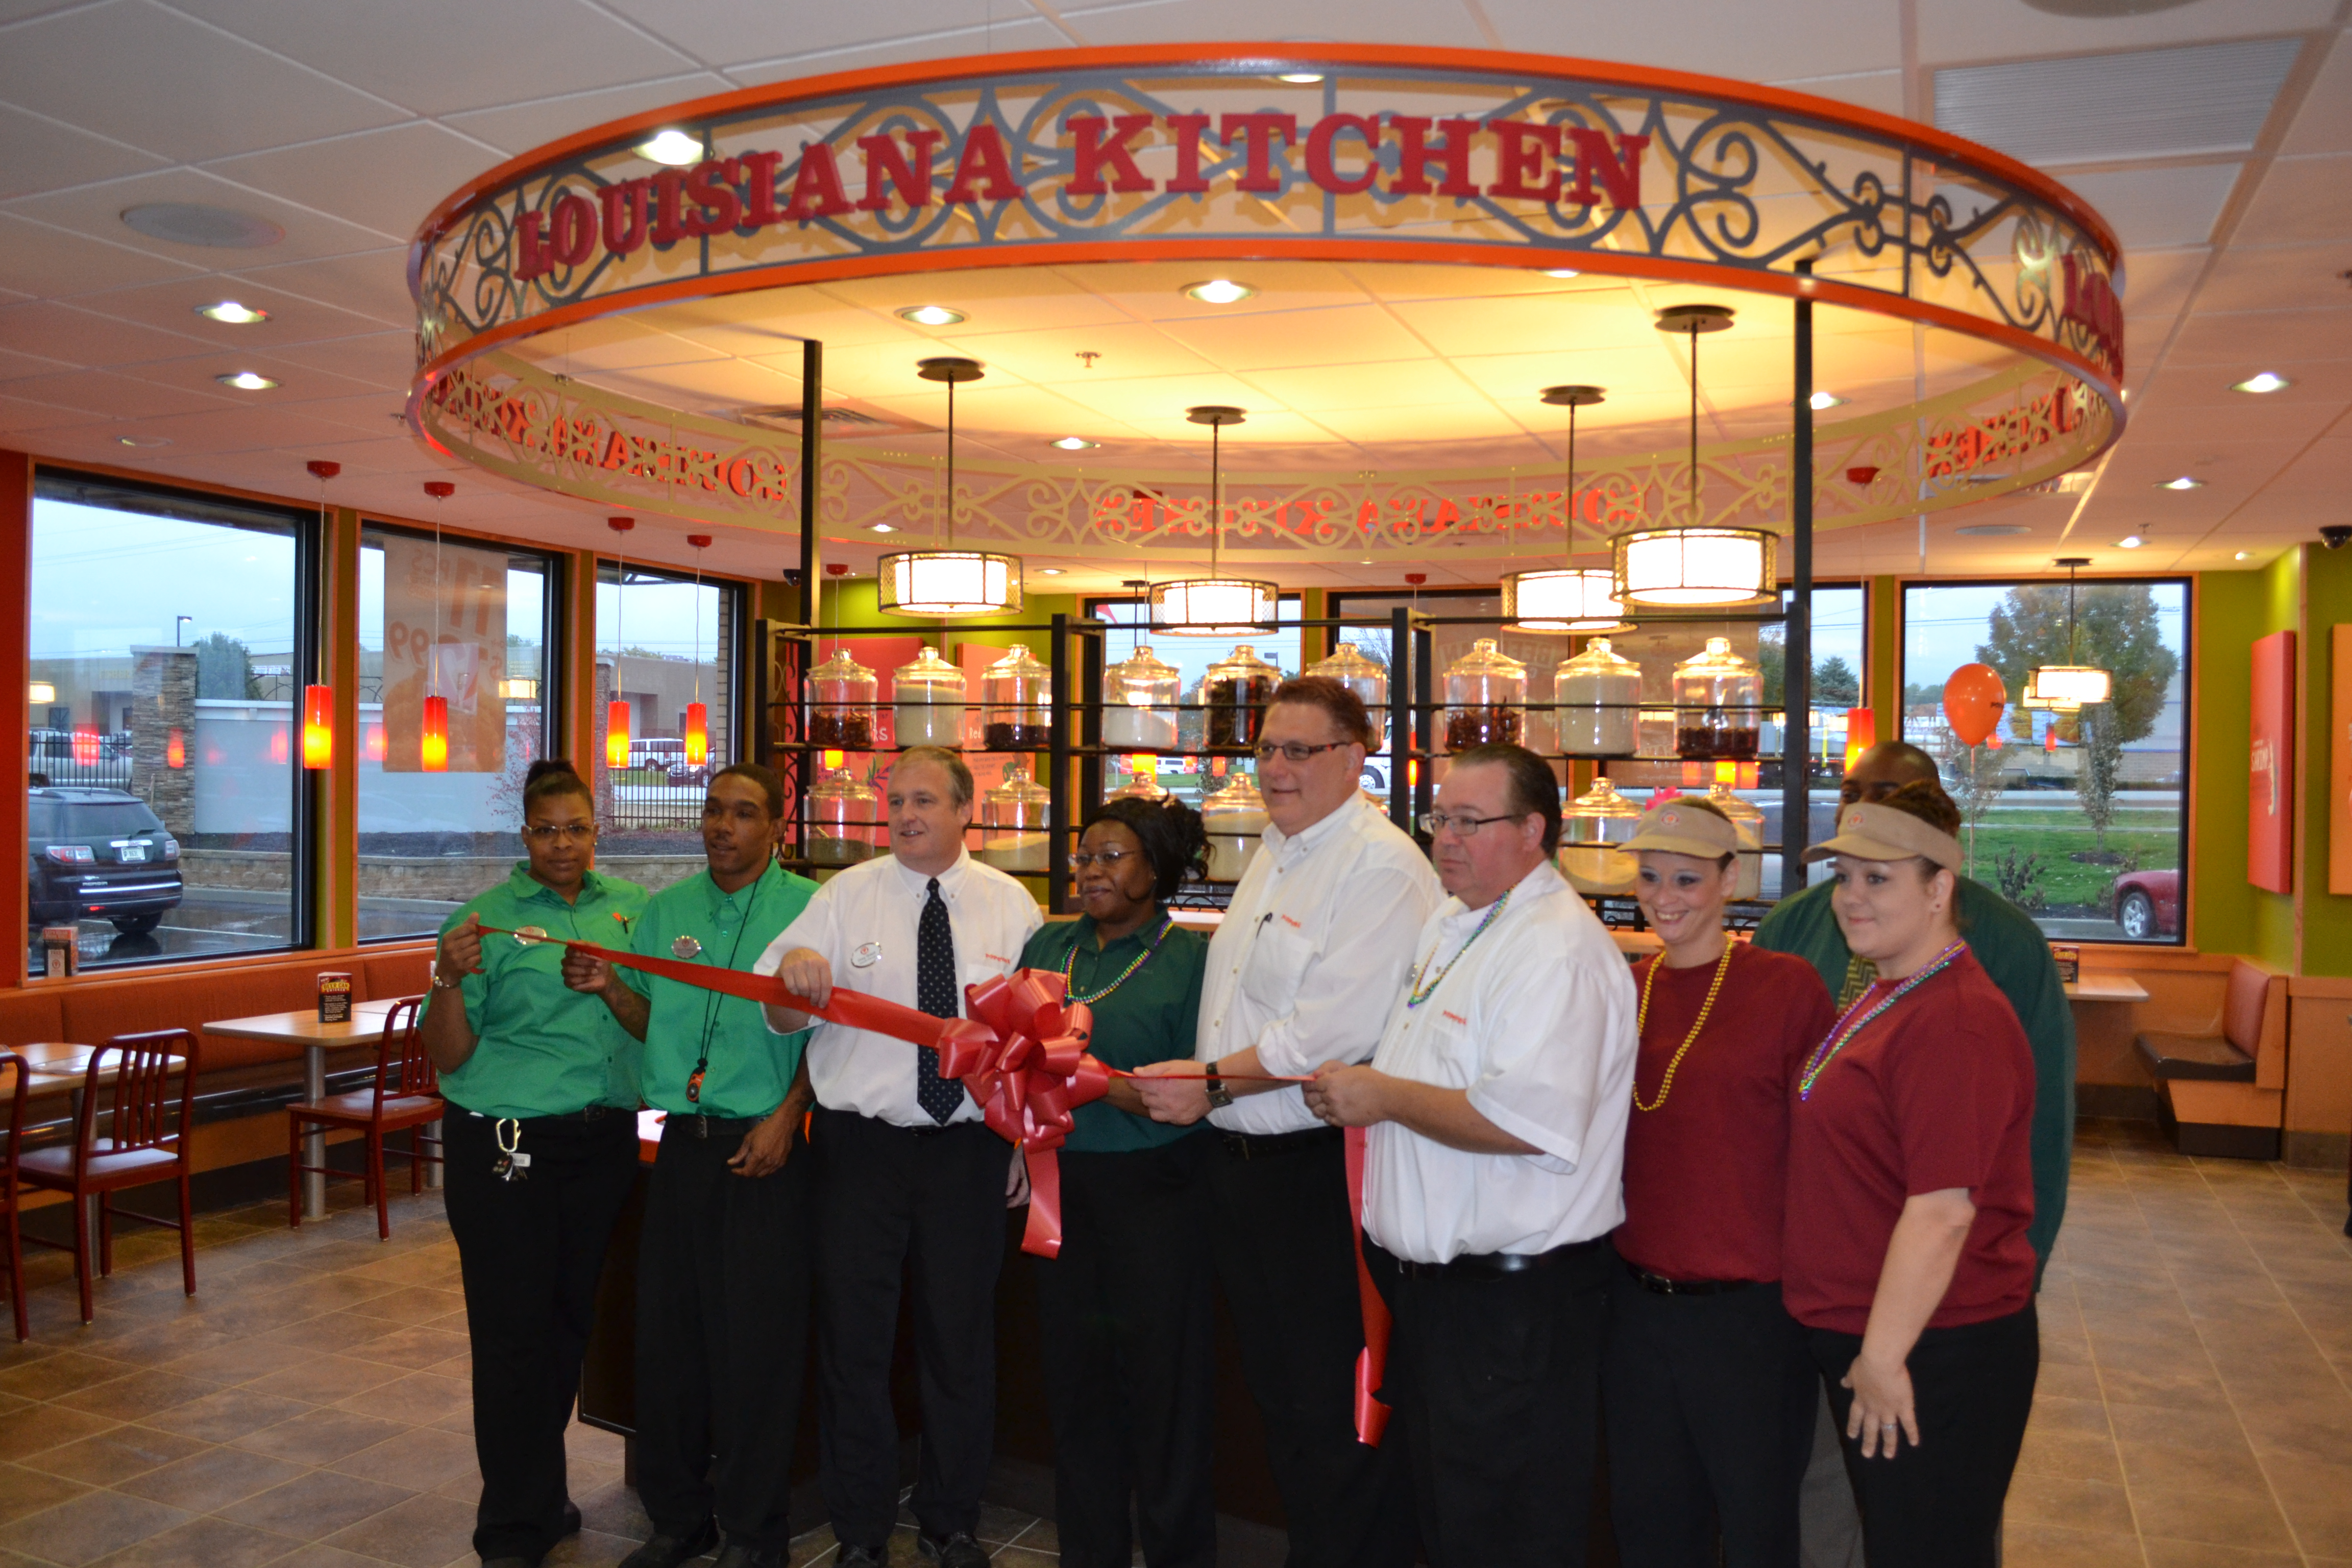 Popeye's restaurant in Fishers Marketplace held its ribbon cutting on Oct. 13. (Photo by John Cinnamon)